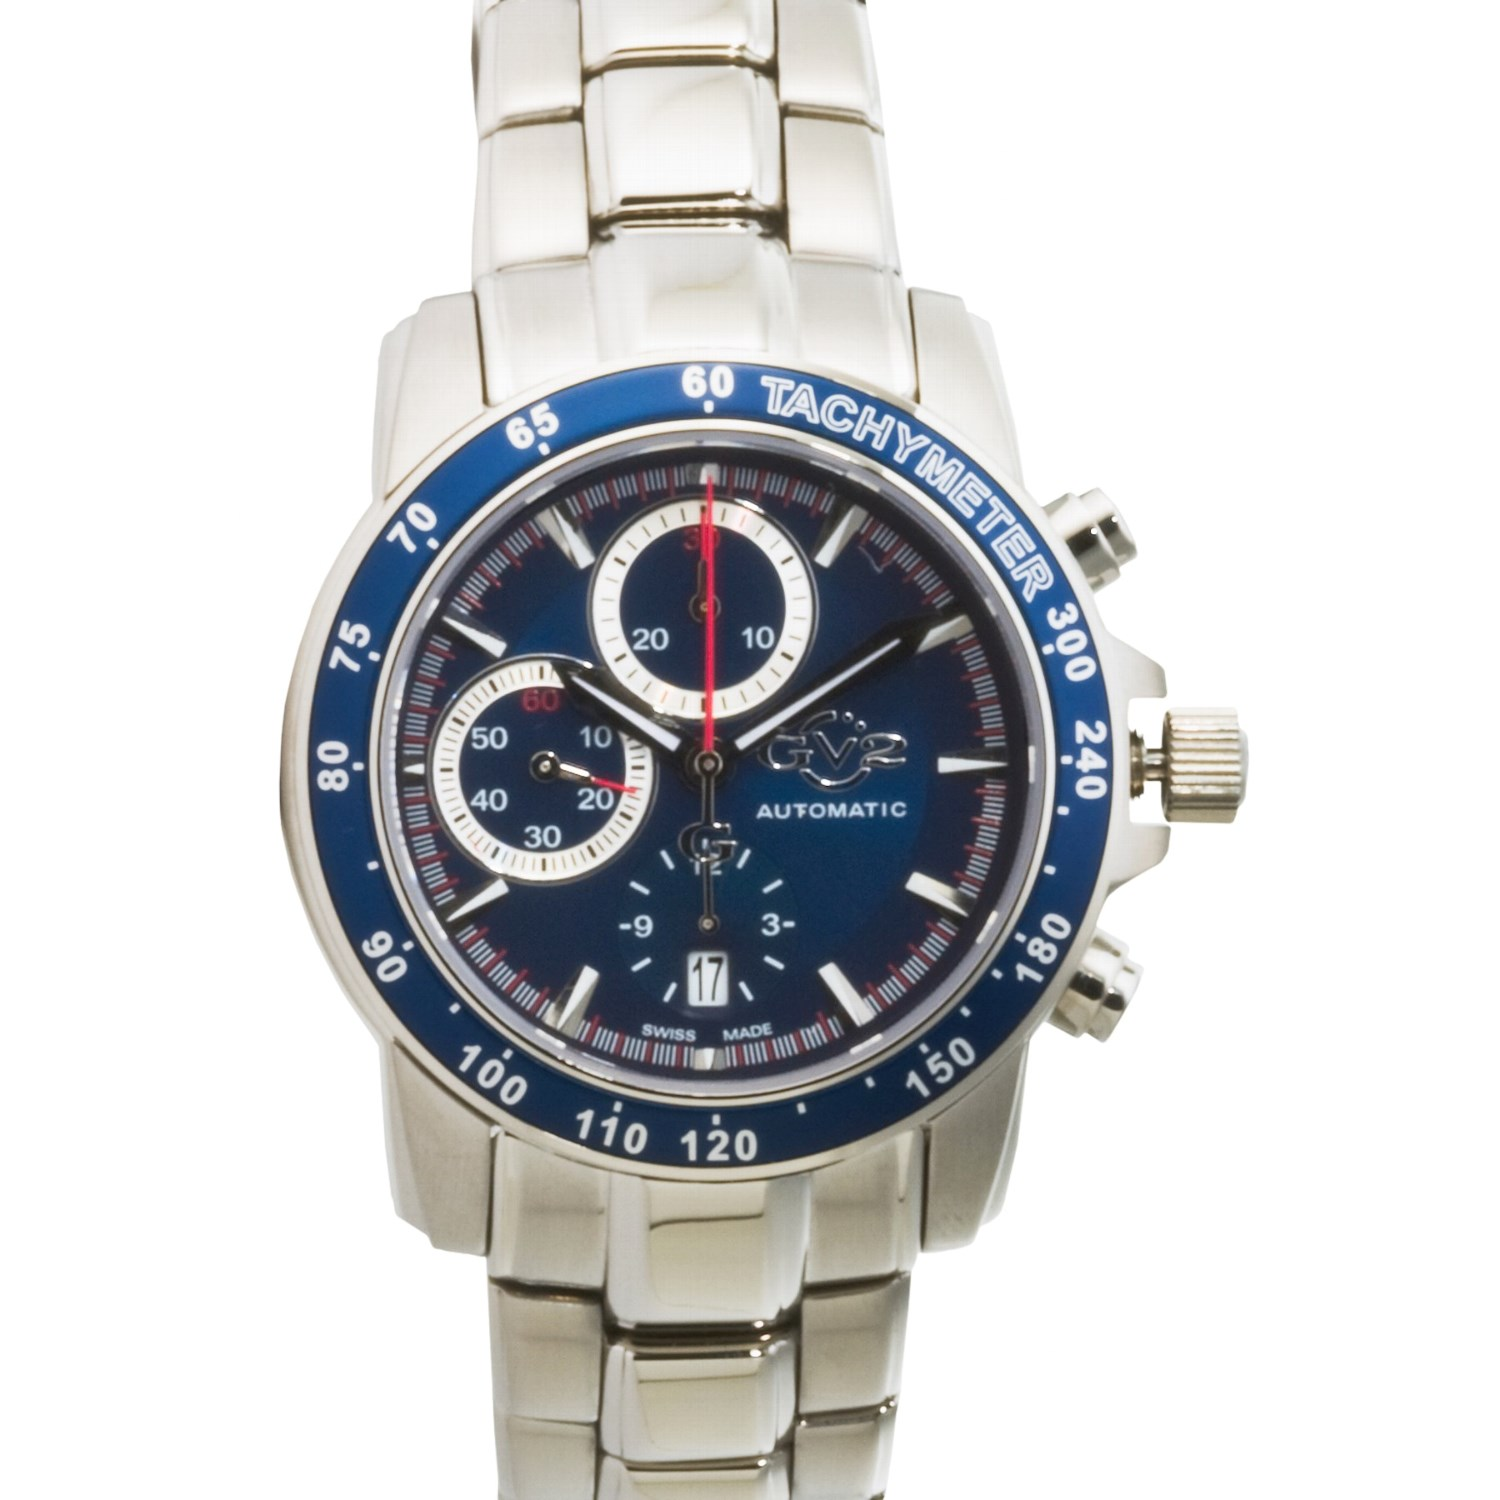 Gevril gv2 explorer automatic chronograph watch 1171f save 69 for Gevril watches